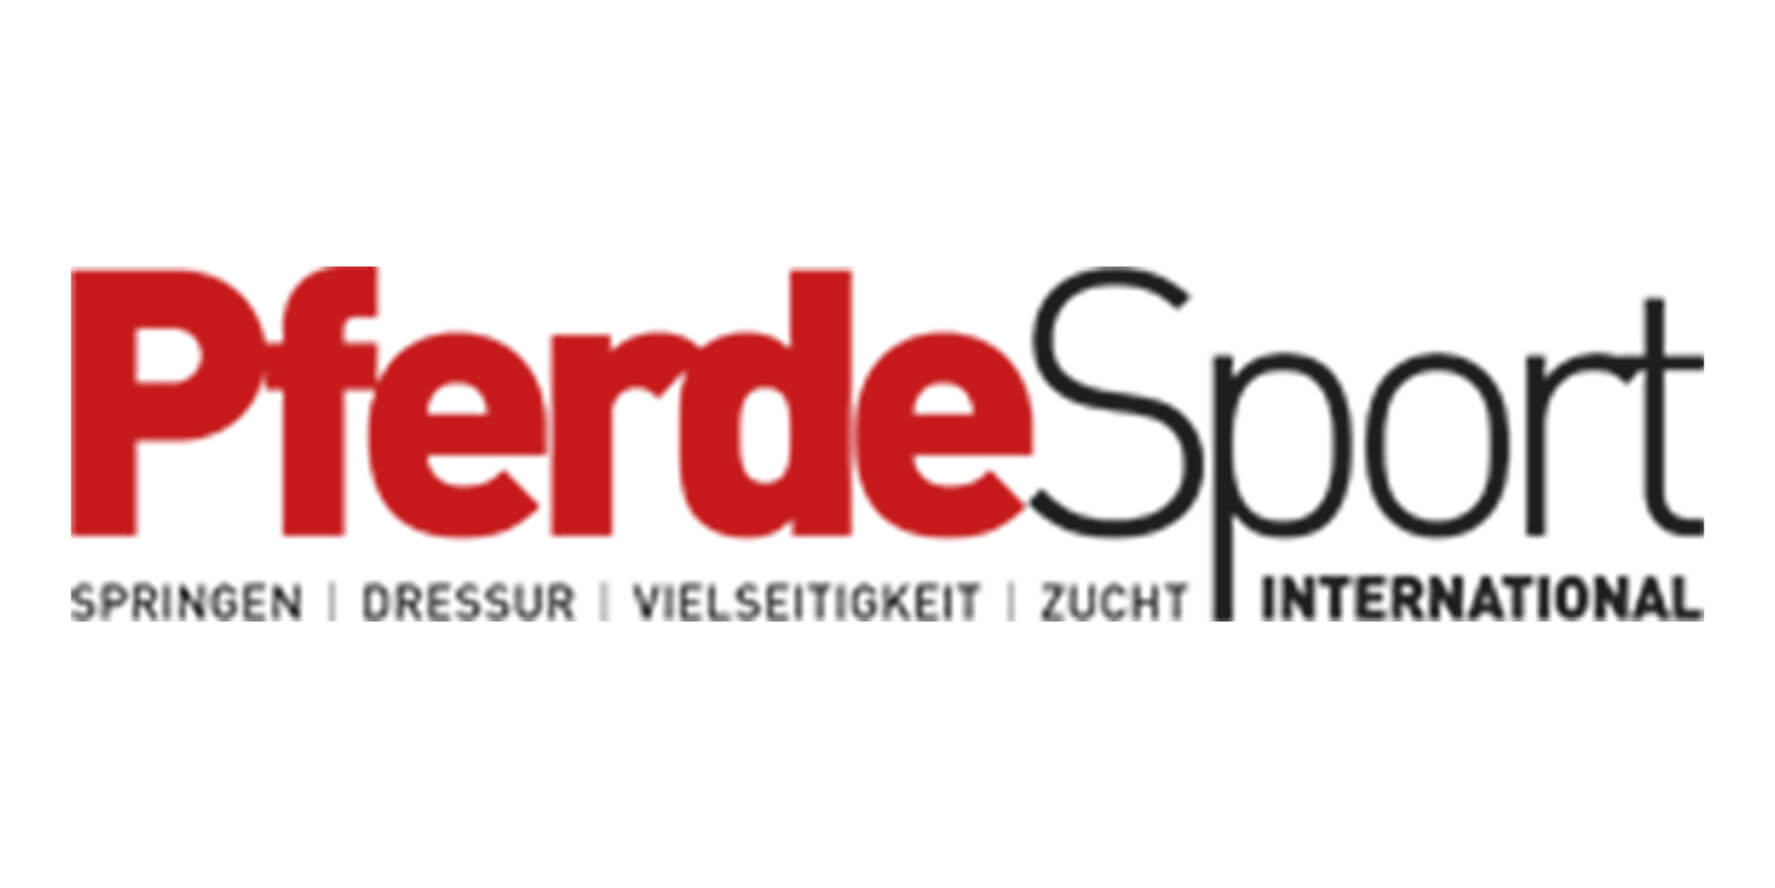 Pferdesport International